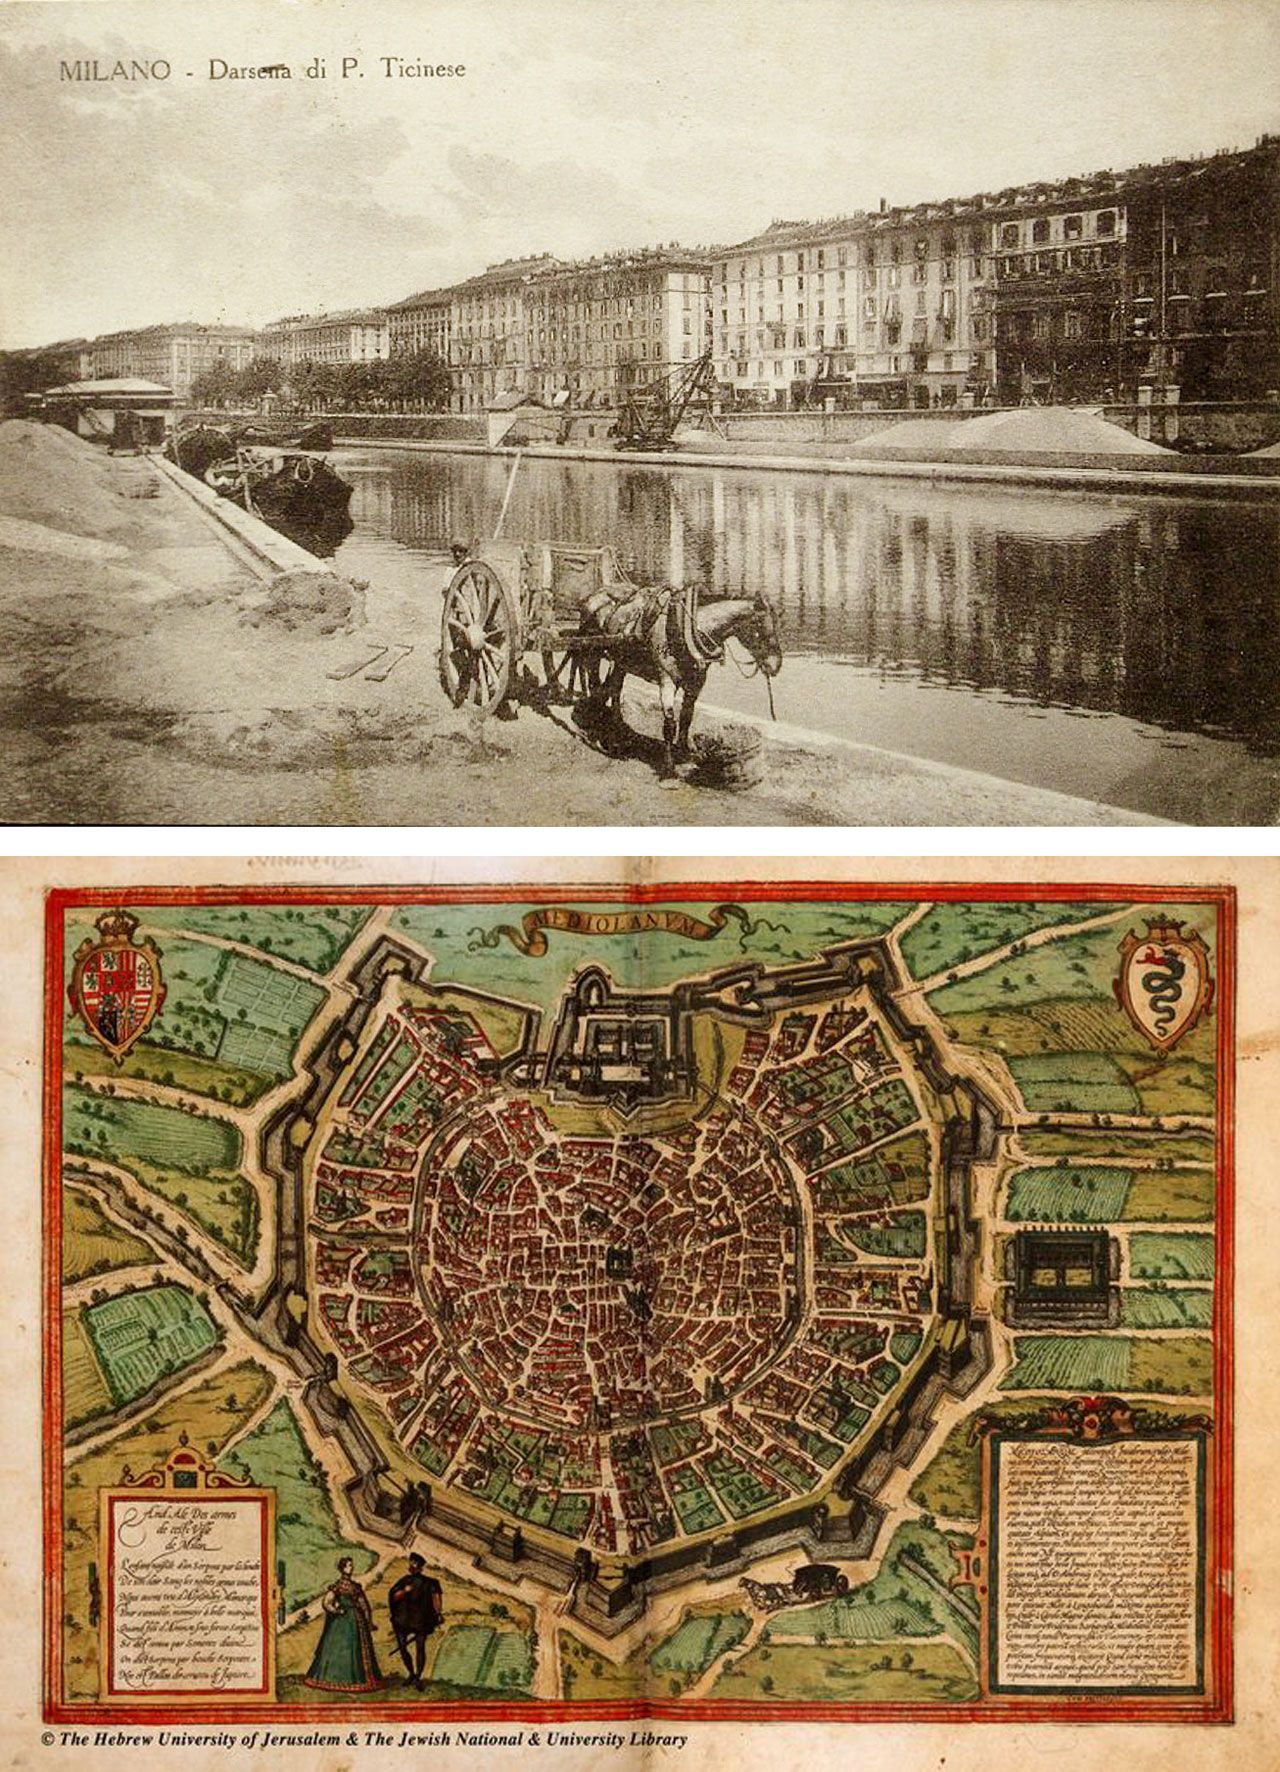 The map of Milan in the Middle Age and a photo of the Darsena